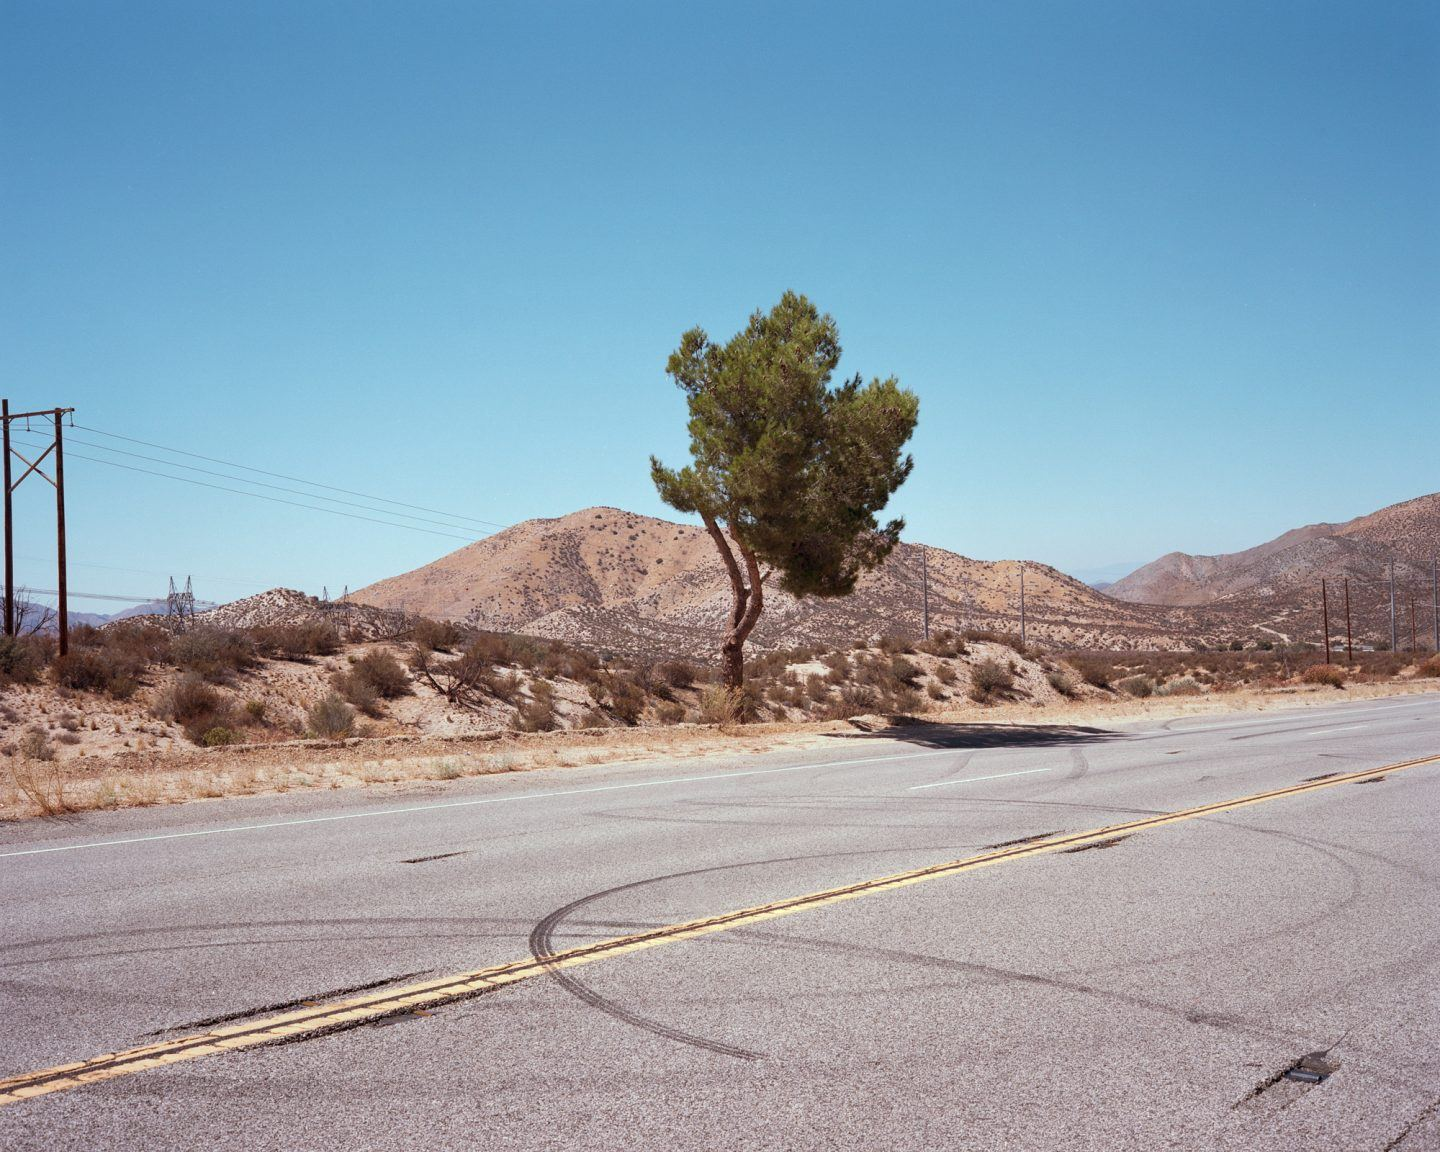 IGNANT-Photography-Clement-Chapillon-Meet-California-05